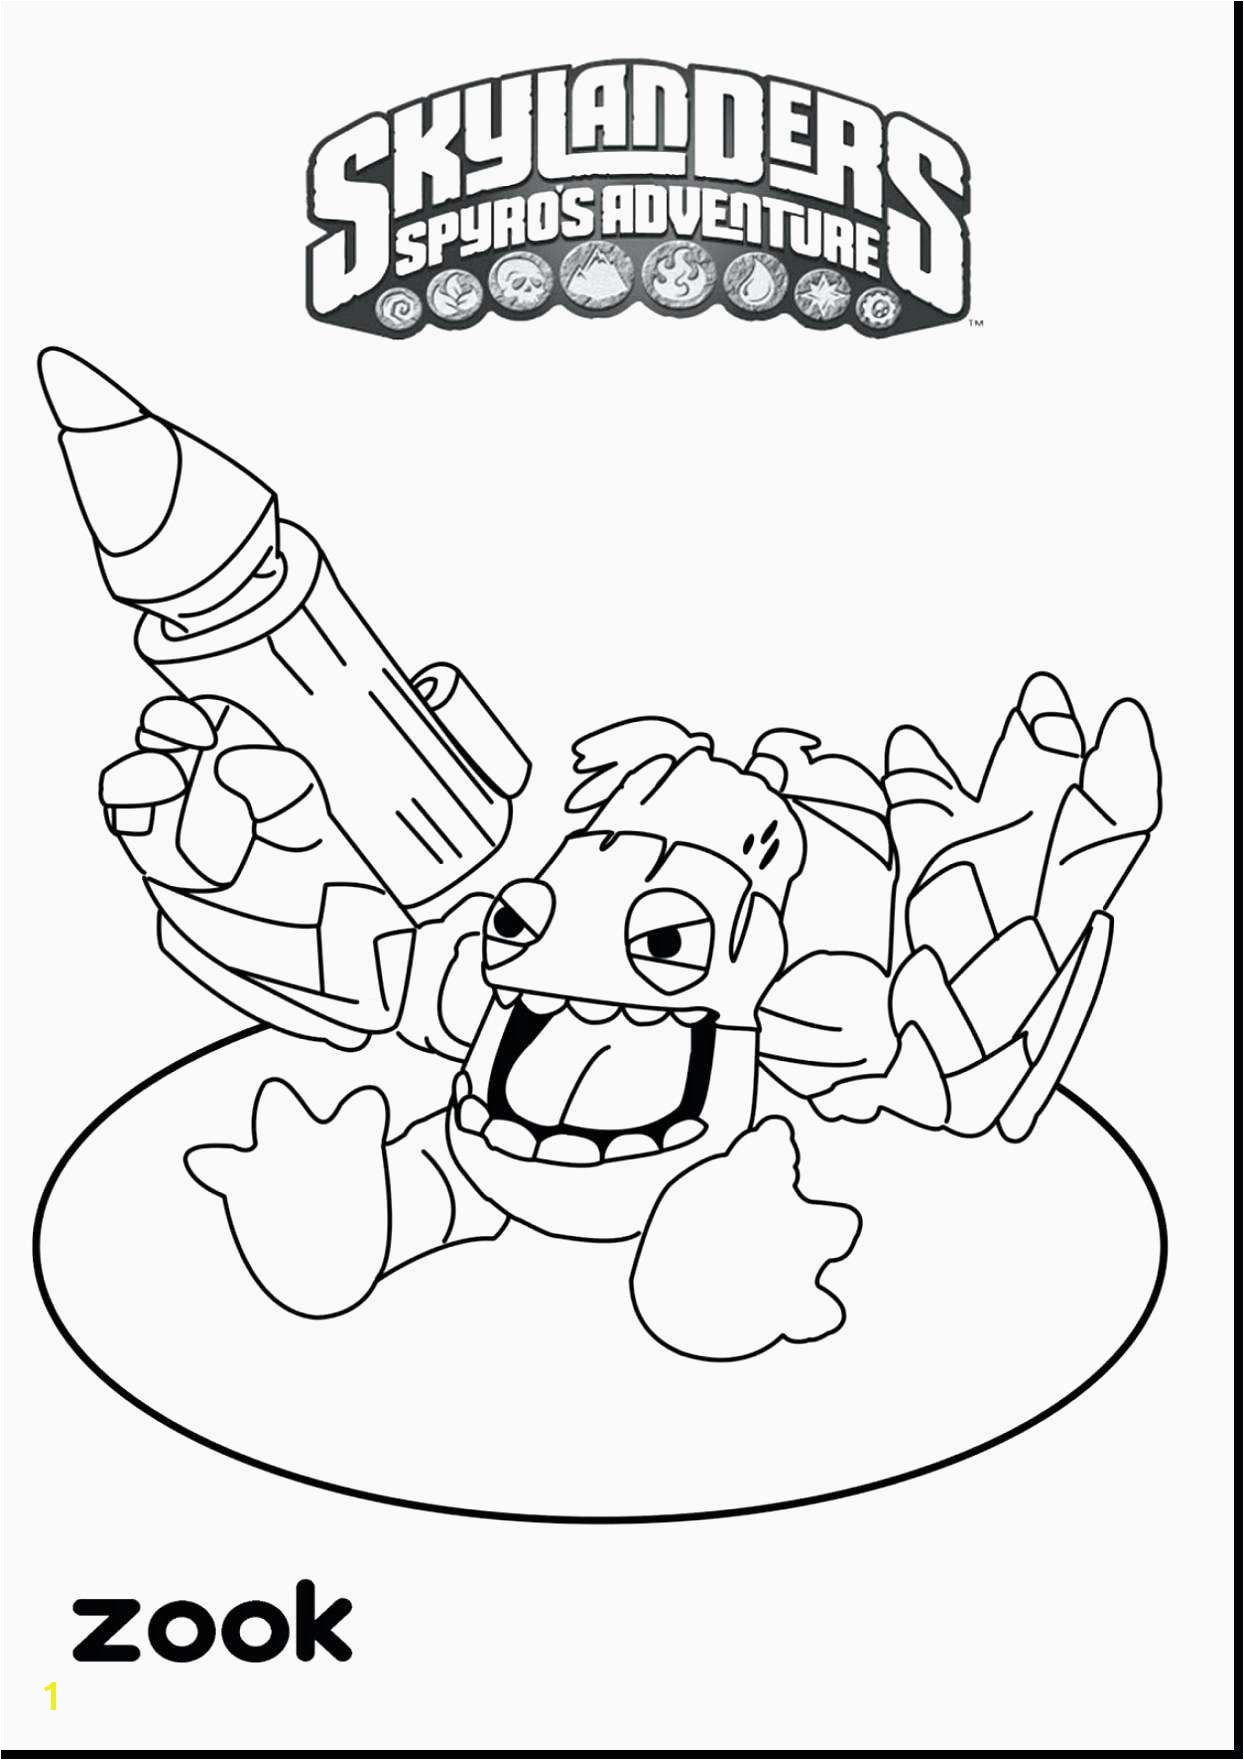 Princess Cat Coloring Page Printable Princess Cat Coloring Pages Free Coloring Sheets Home Coloring Pages